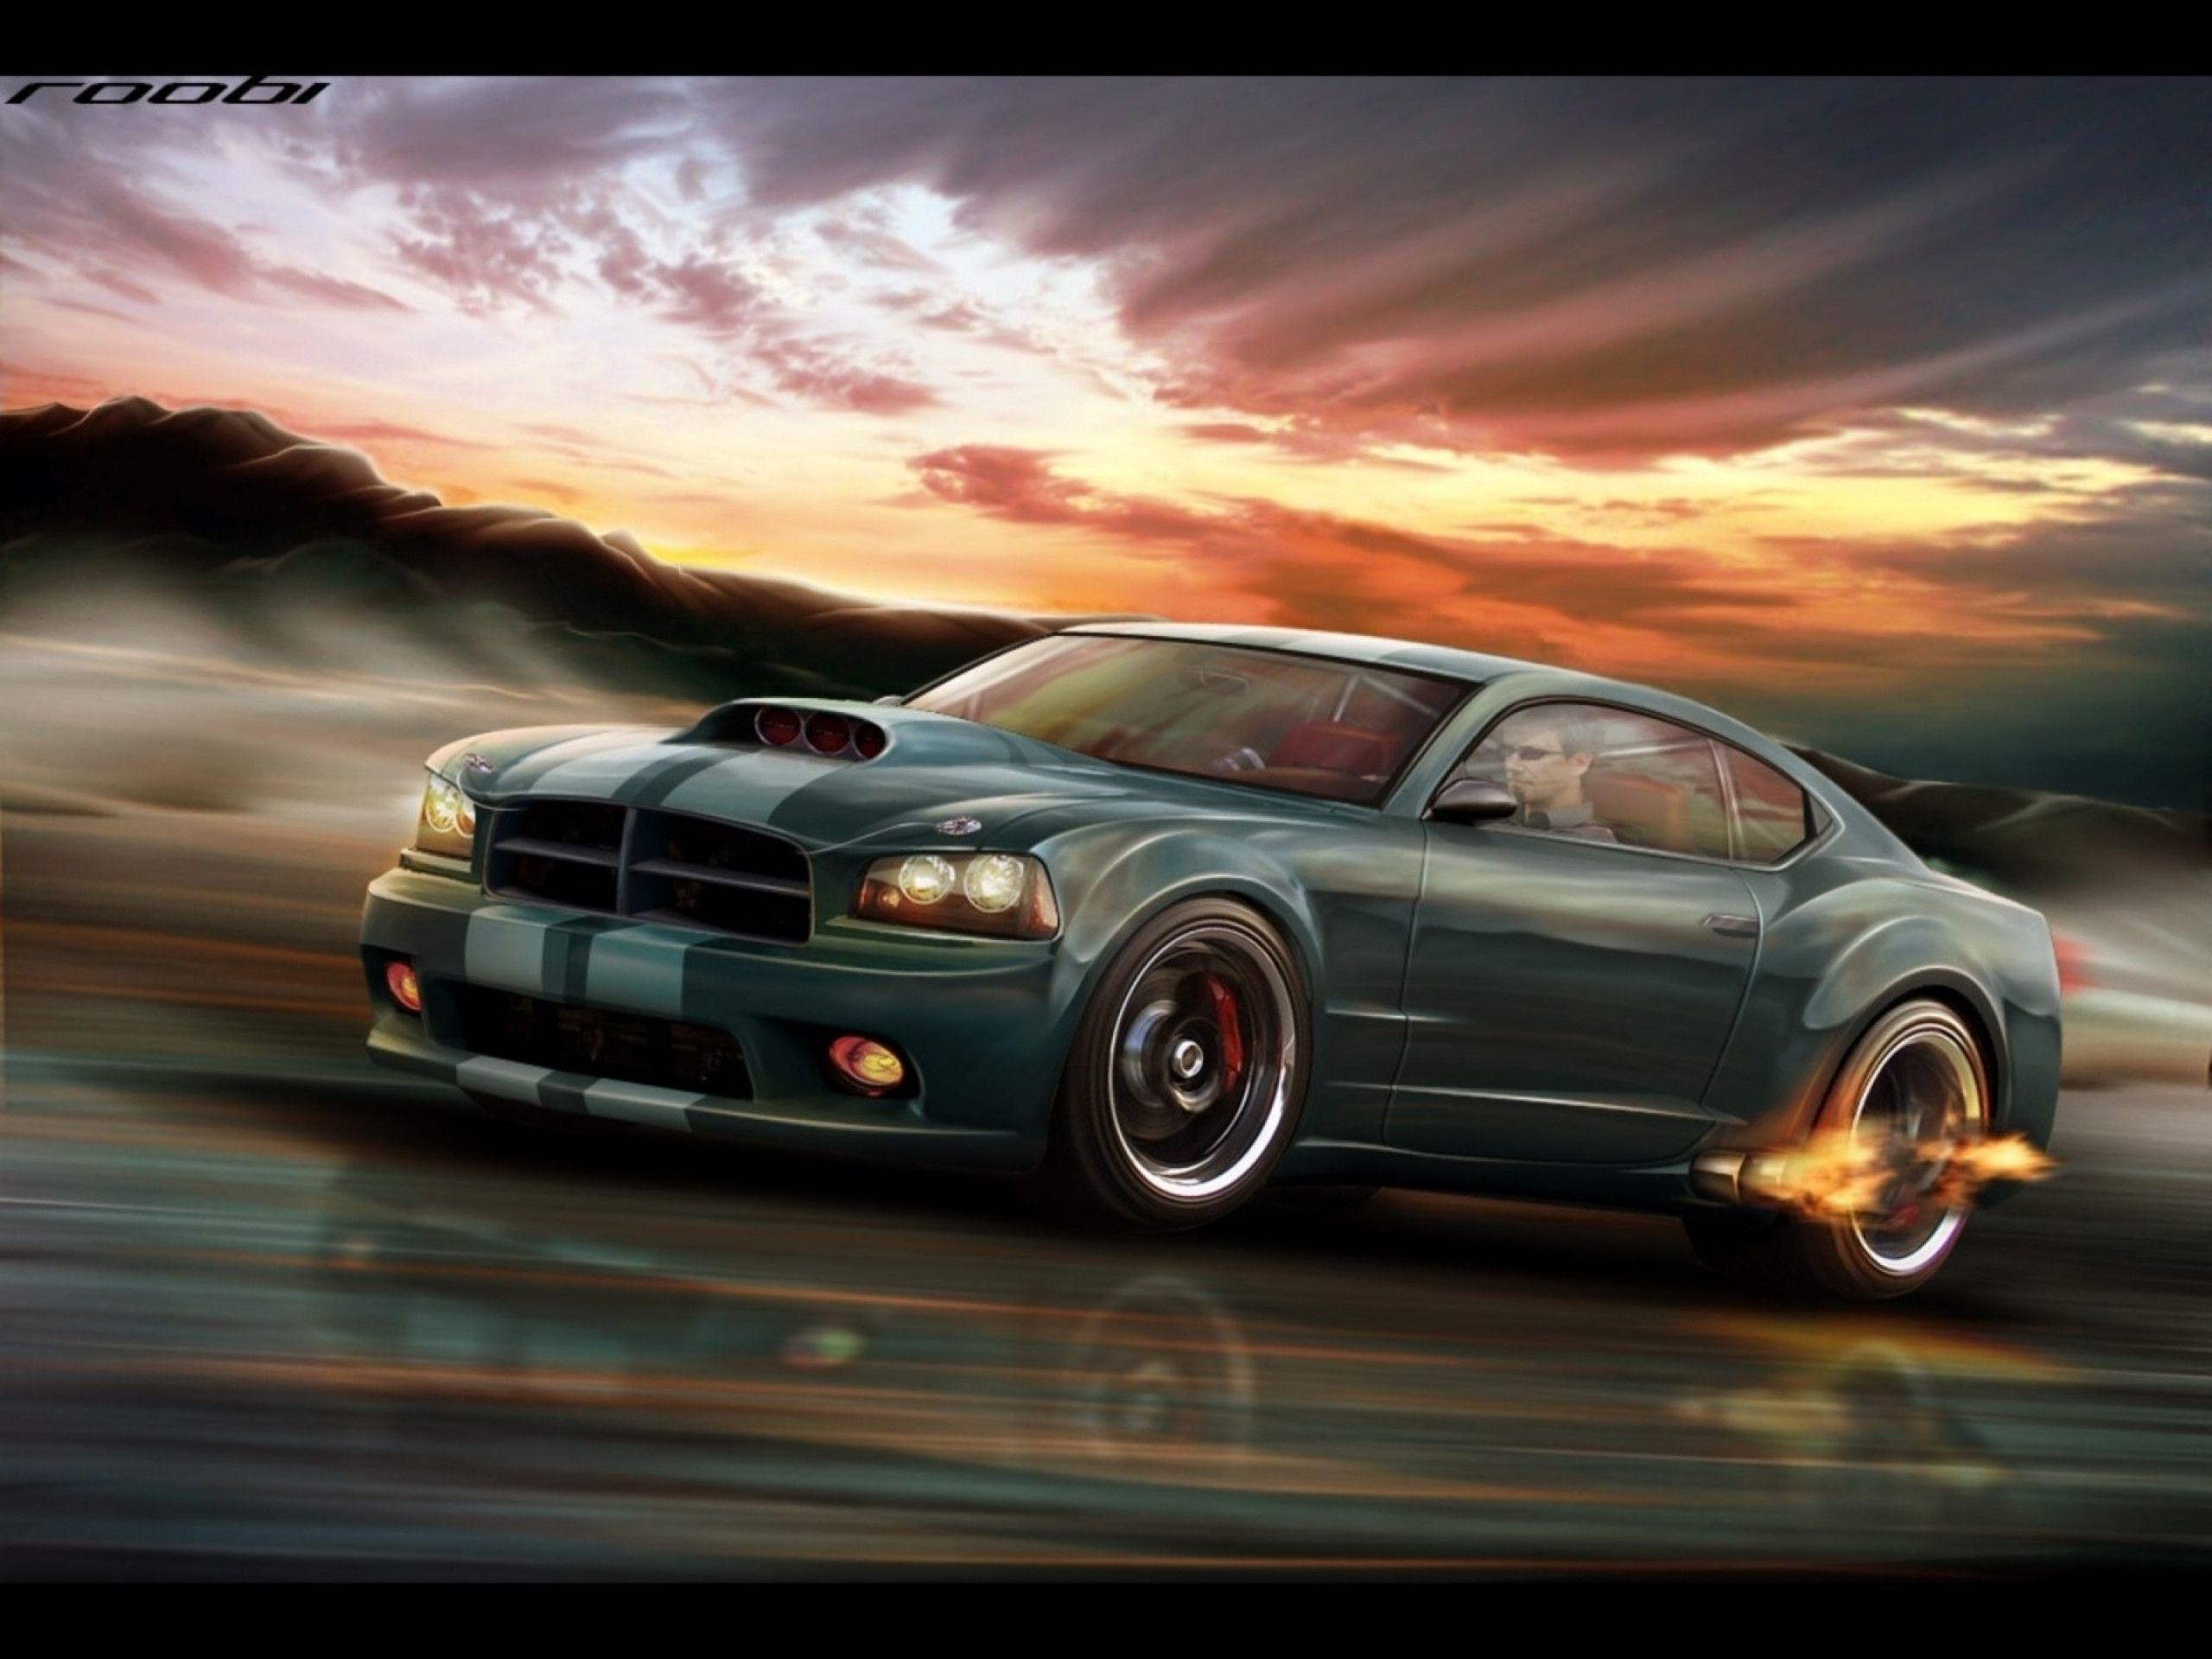 Muscle Car Wallpaper Hd - Cars Wallpapers (9811) ilikewalls.